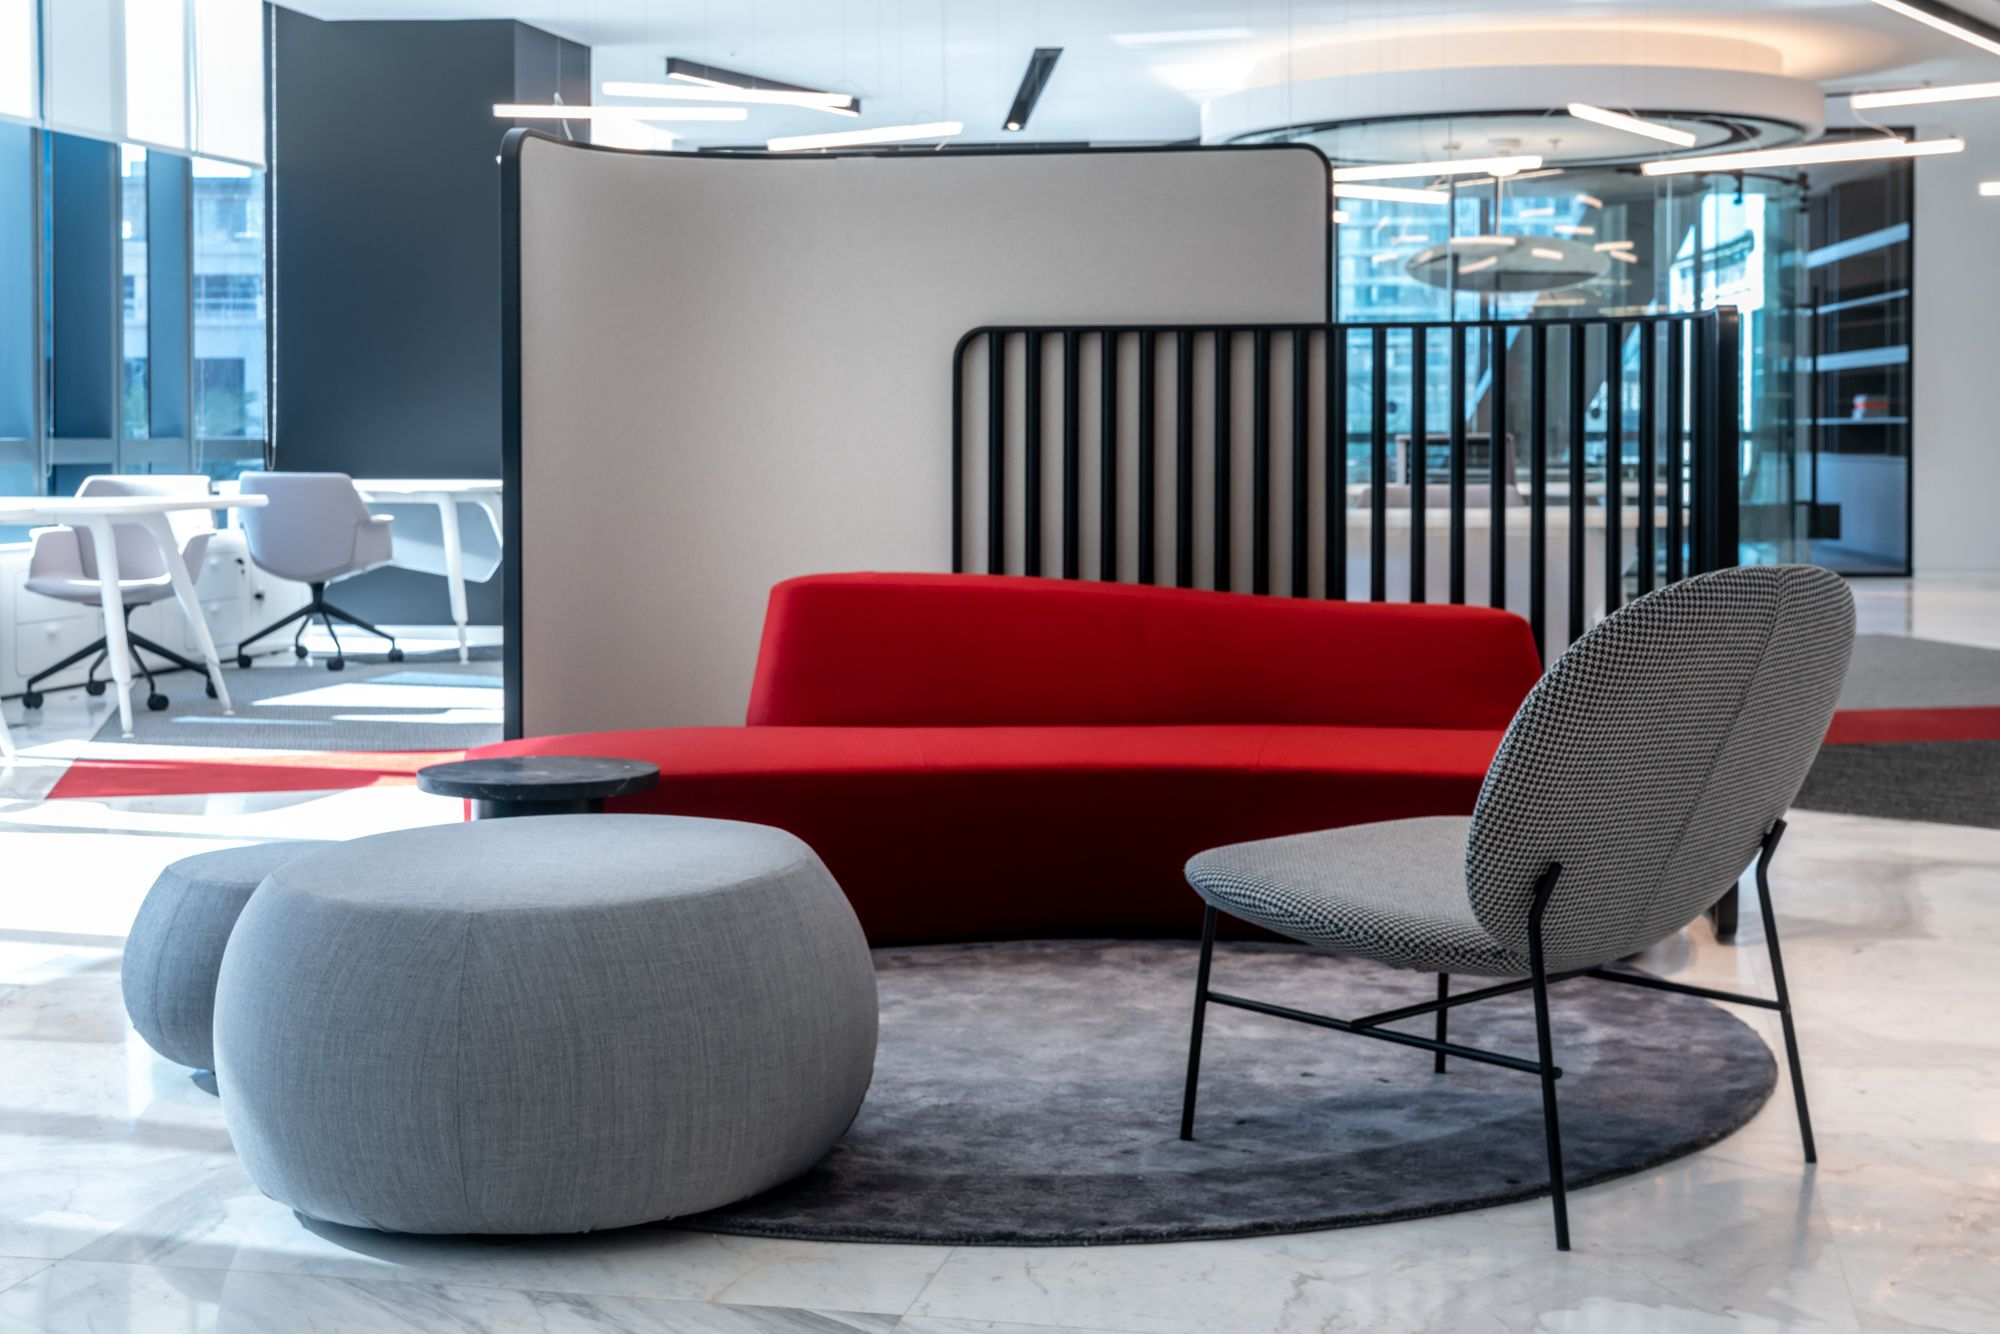 Roar Designs Flexible Work Space Inspired By The Binary Code